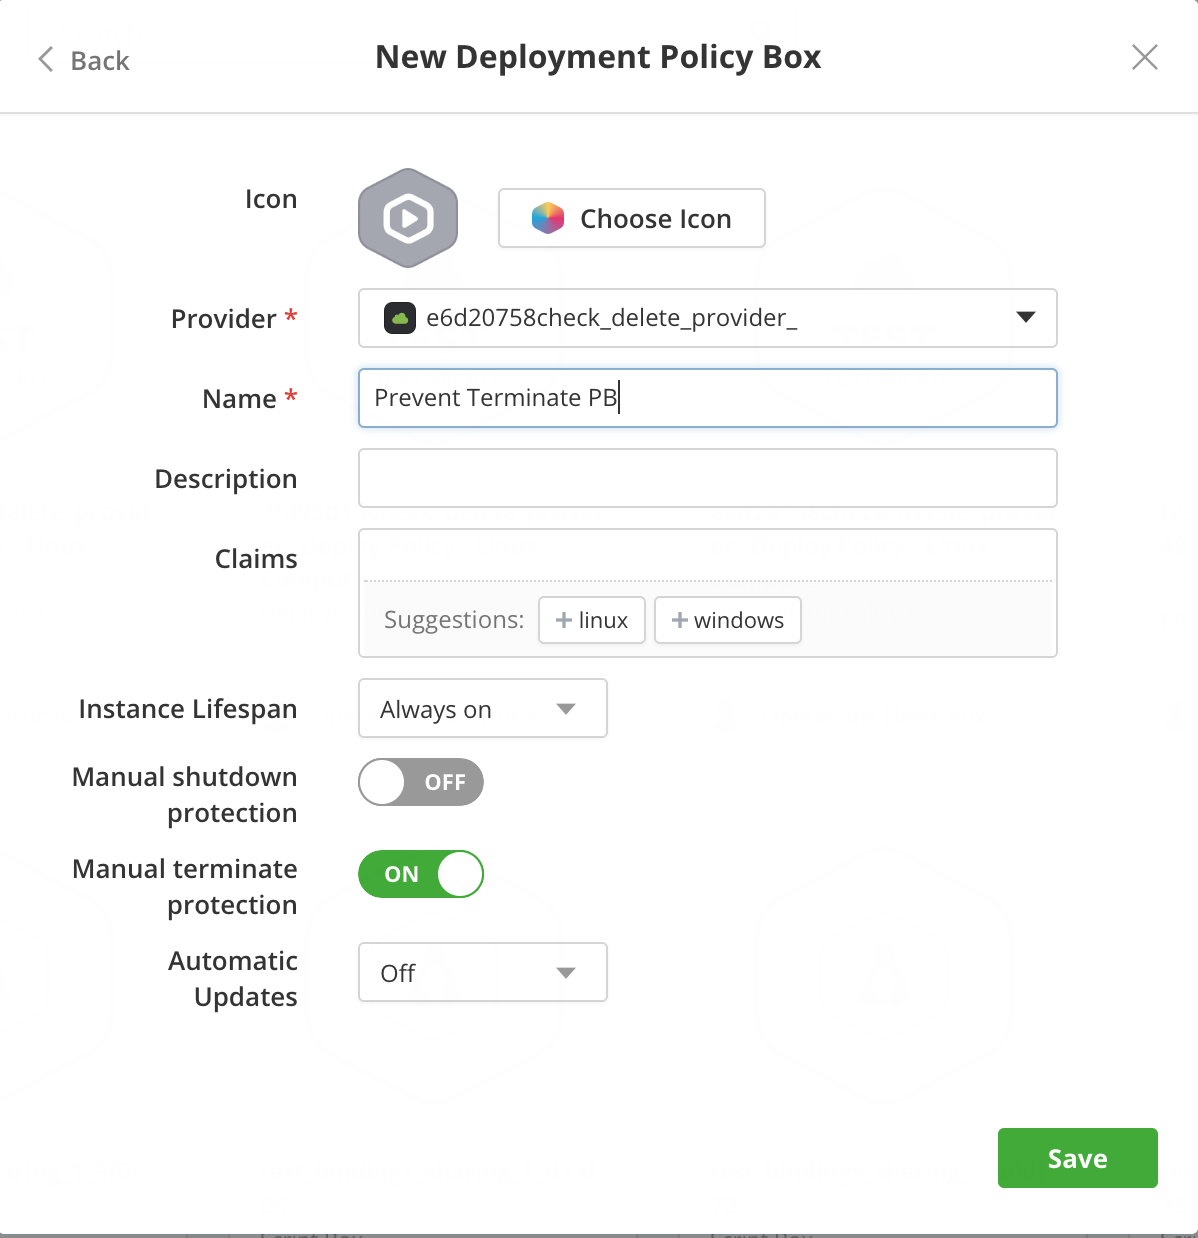 Deployment Policy Box Dialog